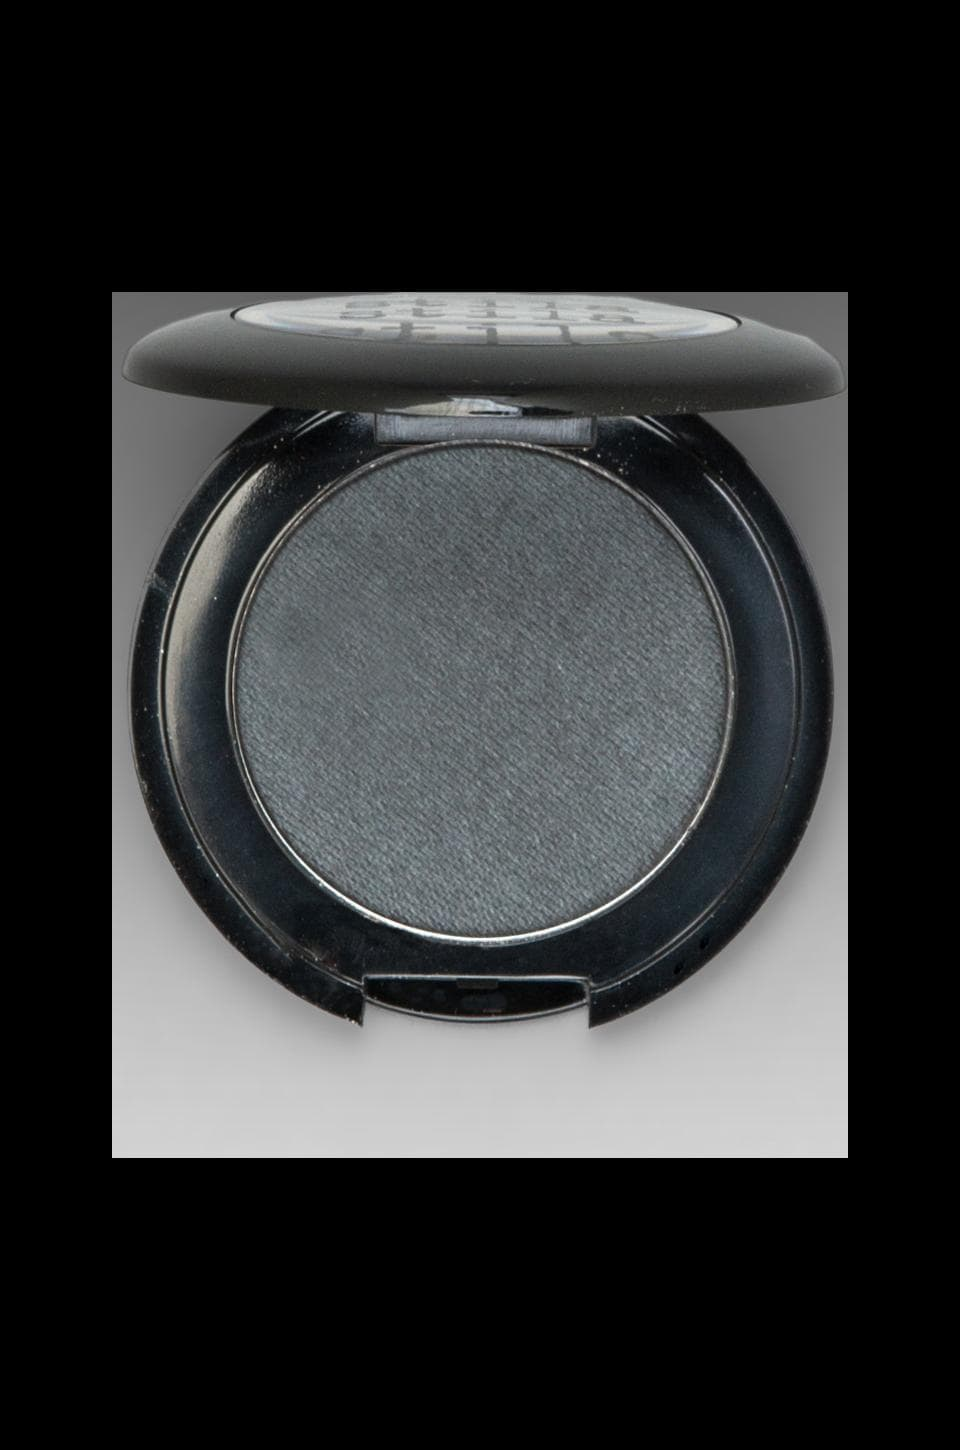 Stila Eye Shadow in Pewter - Shimmering Grey Black